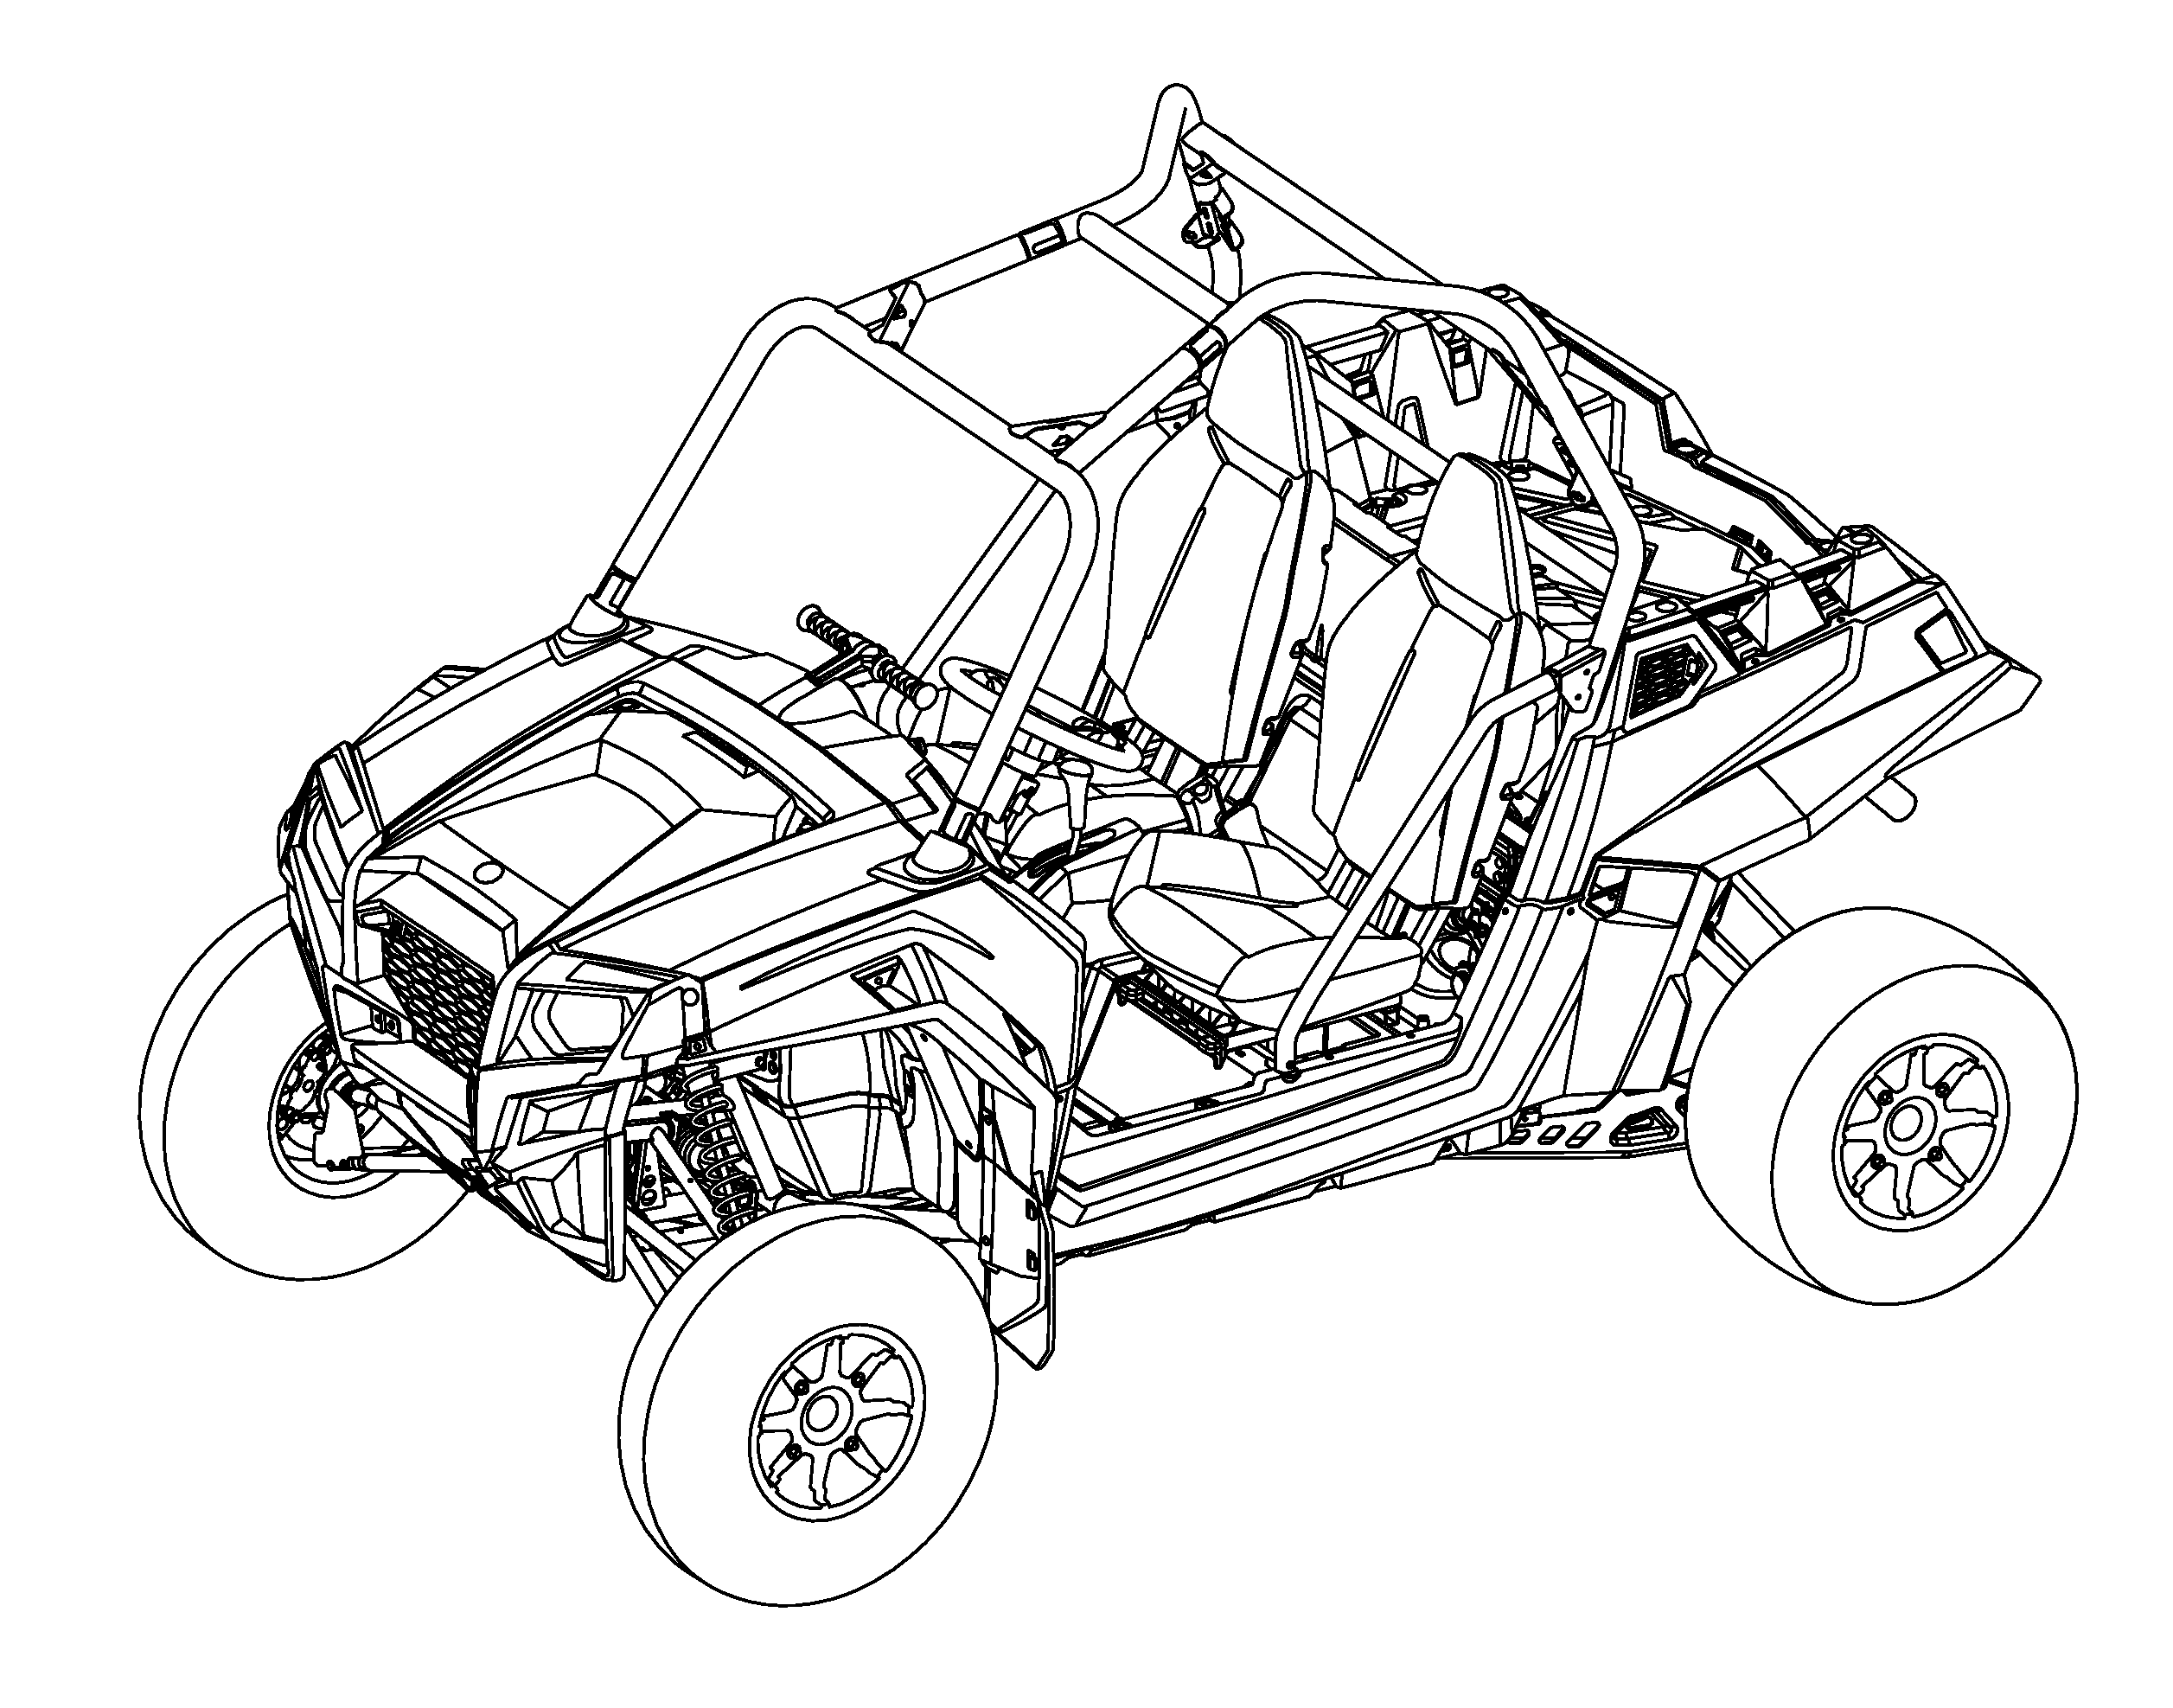 Polaris Rzr Drawing Drawings Coloring Pages Drawing Sketches